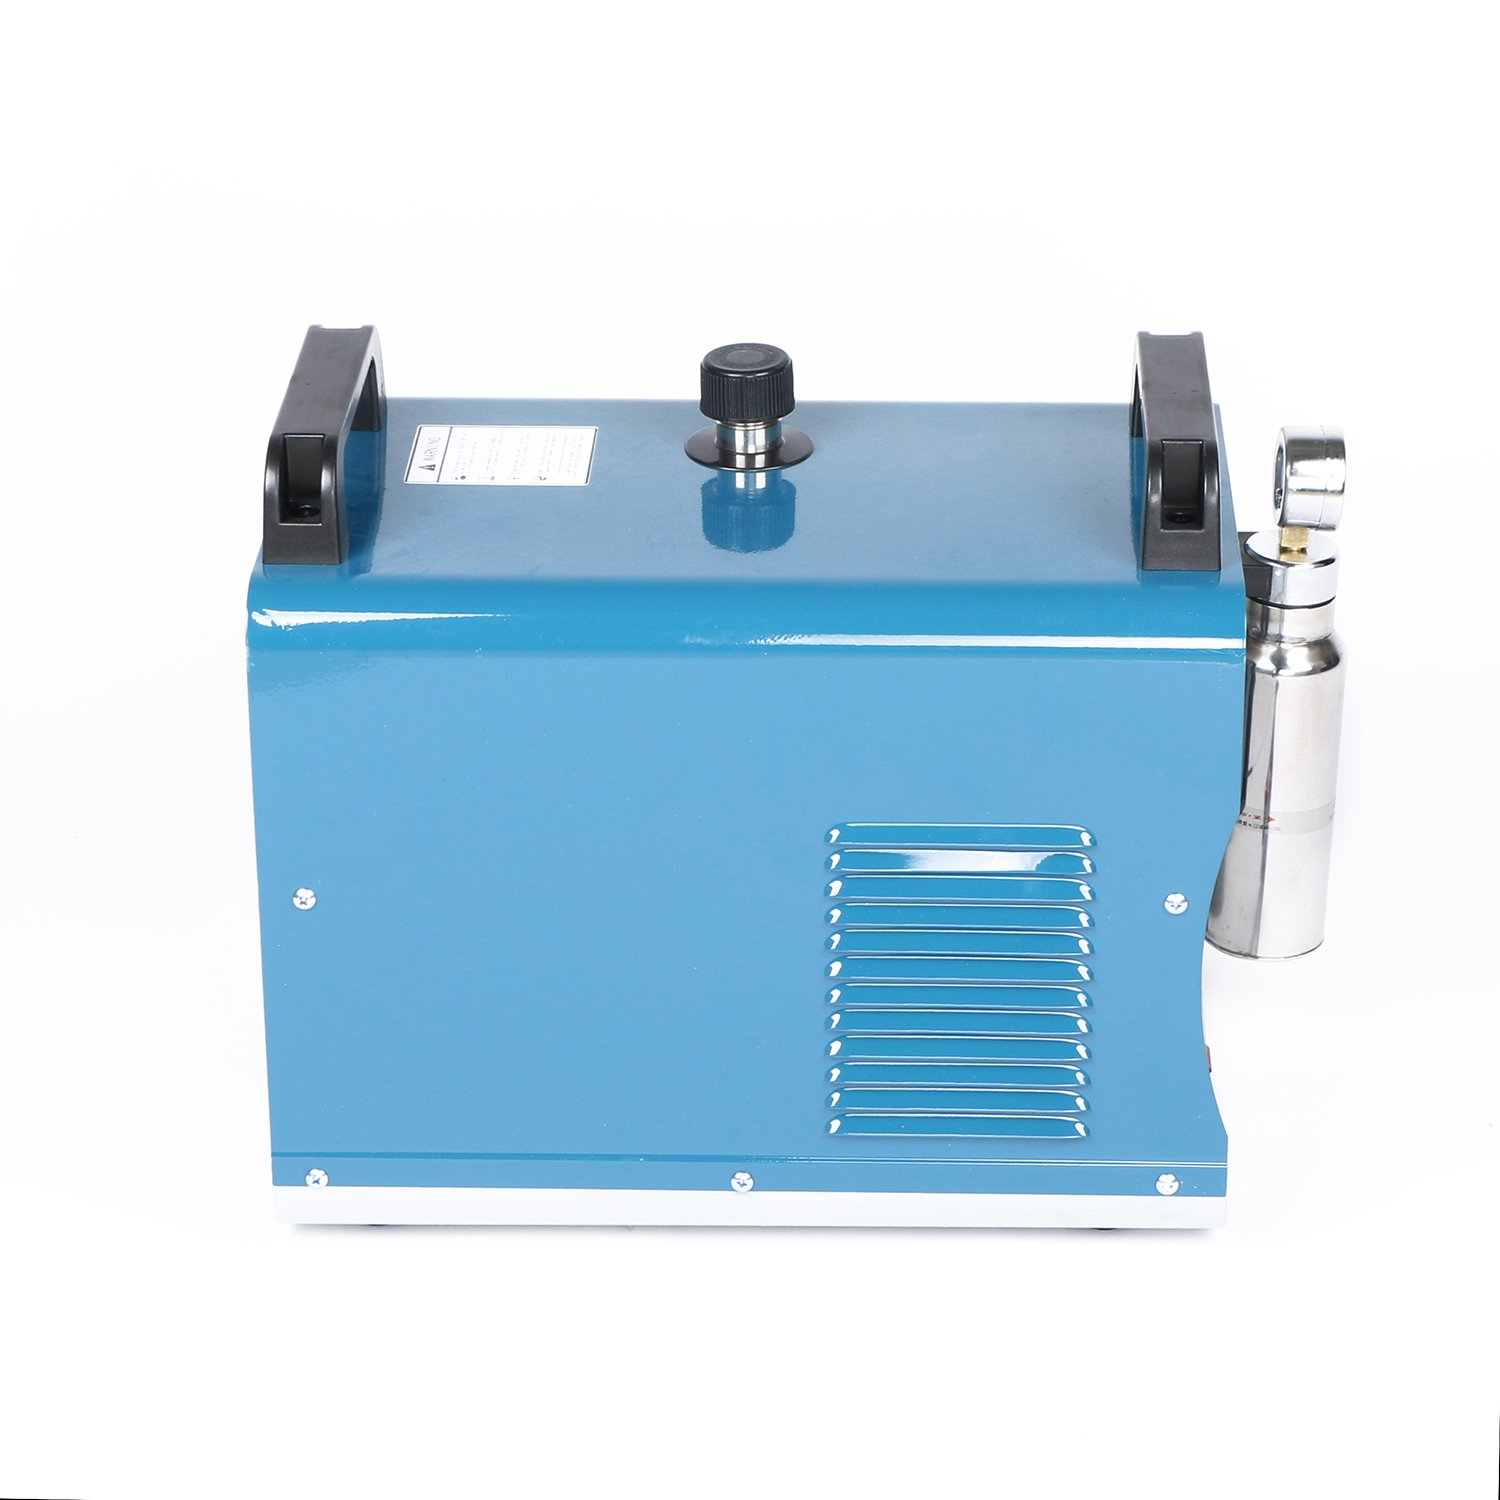 U.S. Solid HHO Generator Water Welder Acrylic Flame Polishing Machine 95 L: Amazon.es: Bricolaje y herramientas